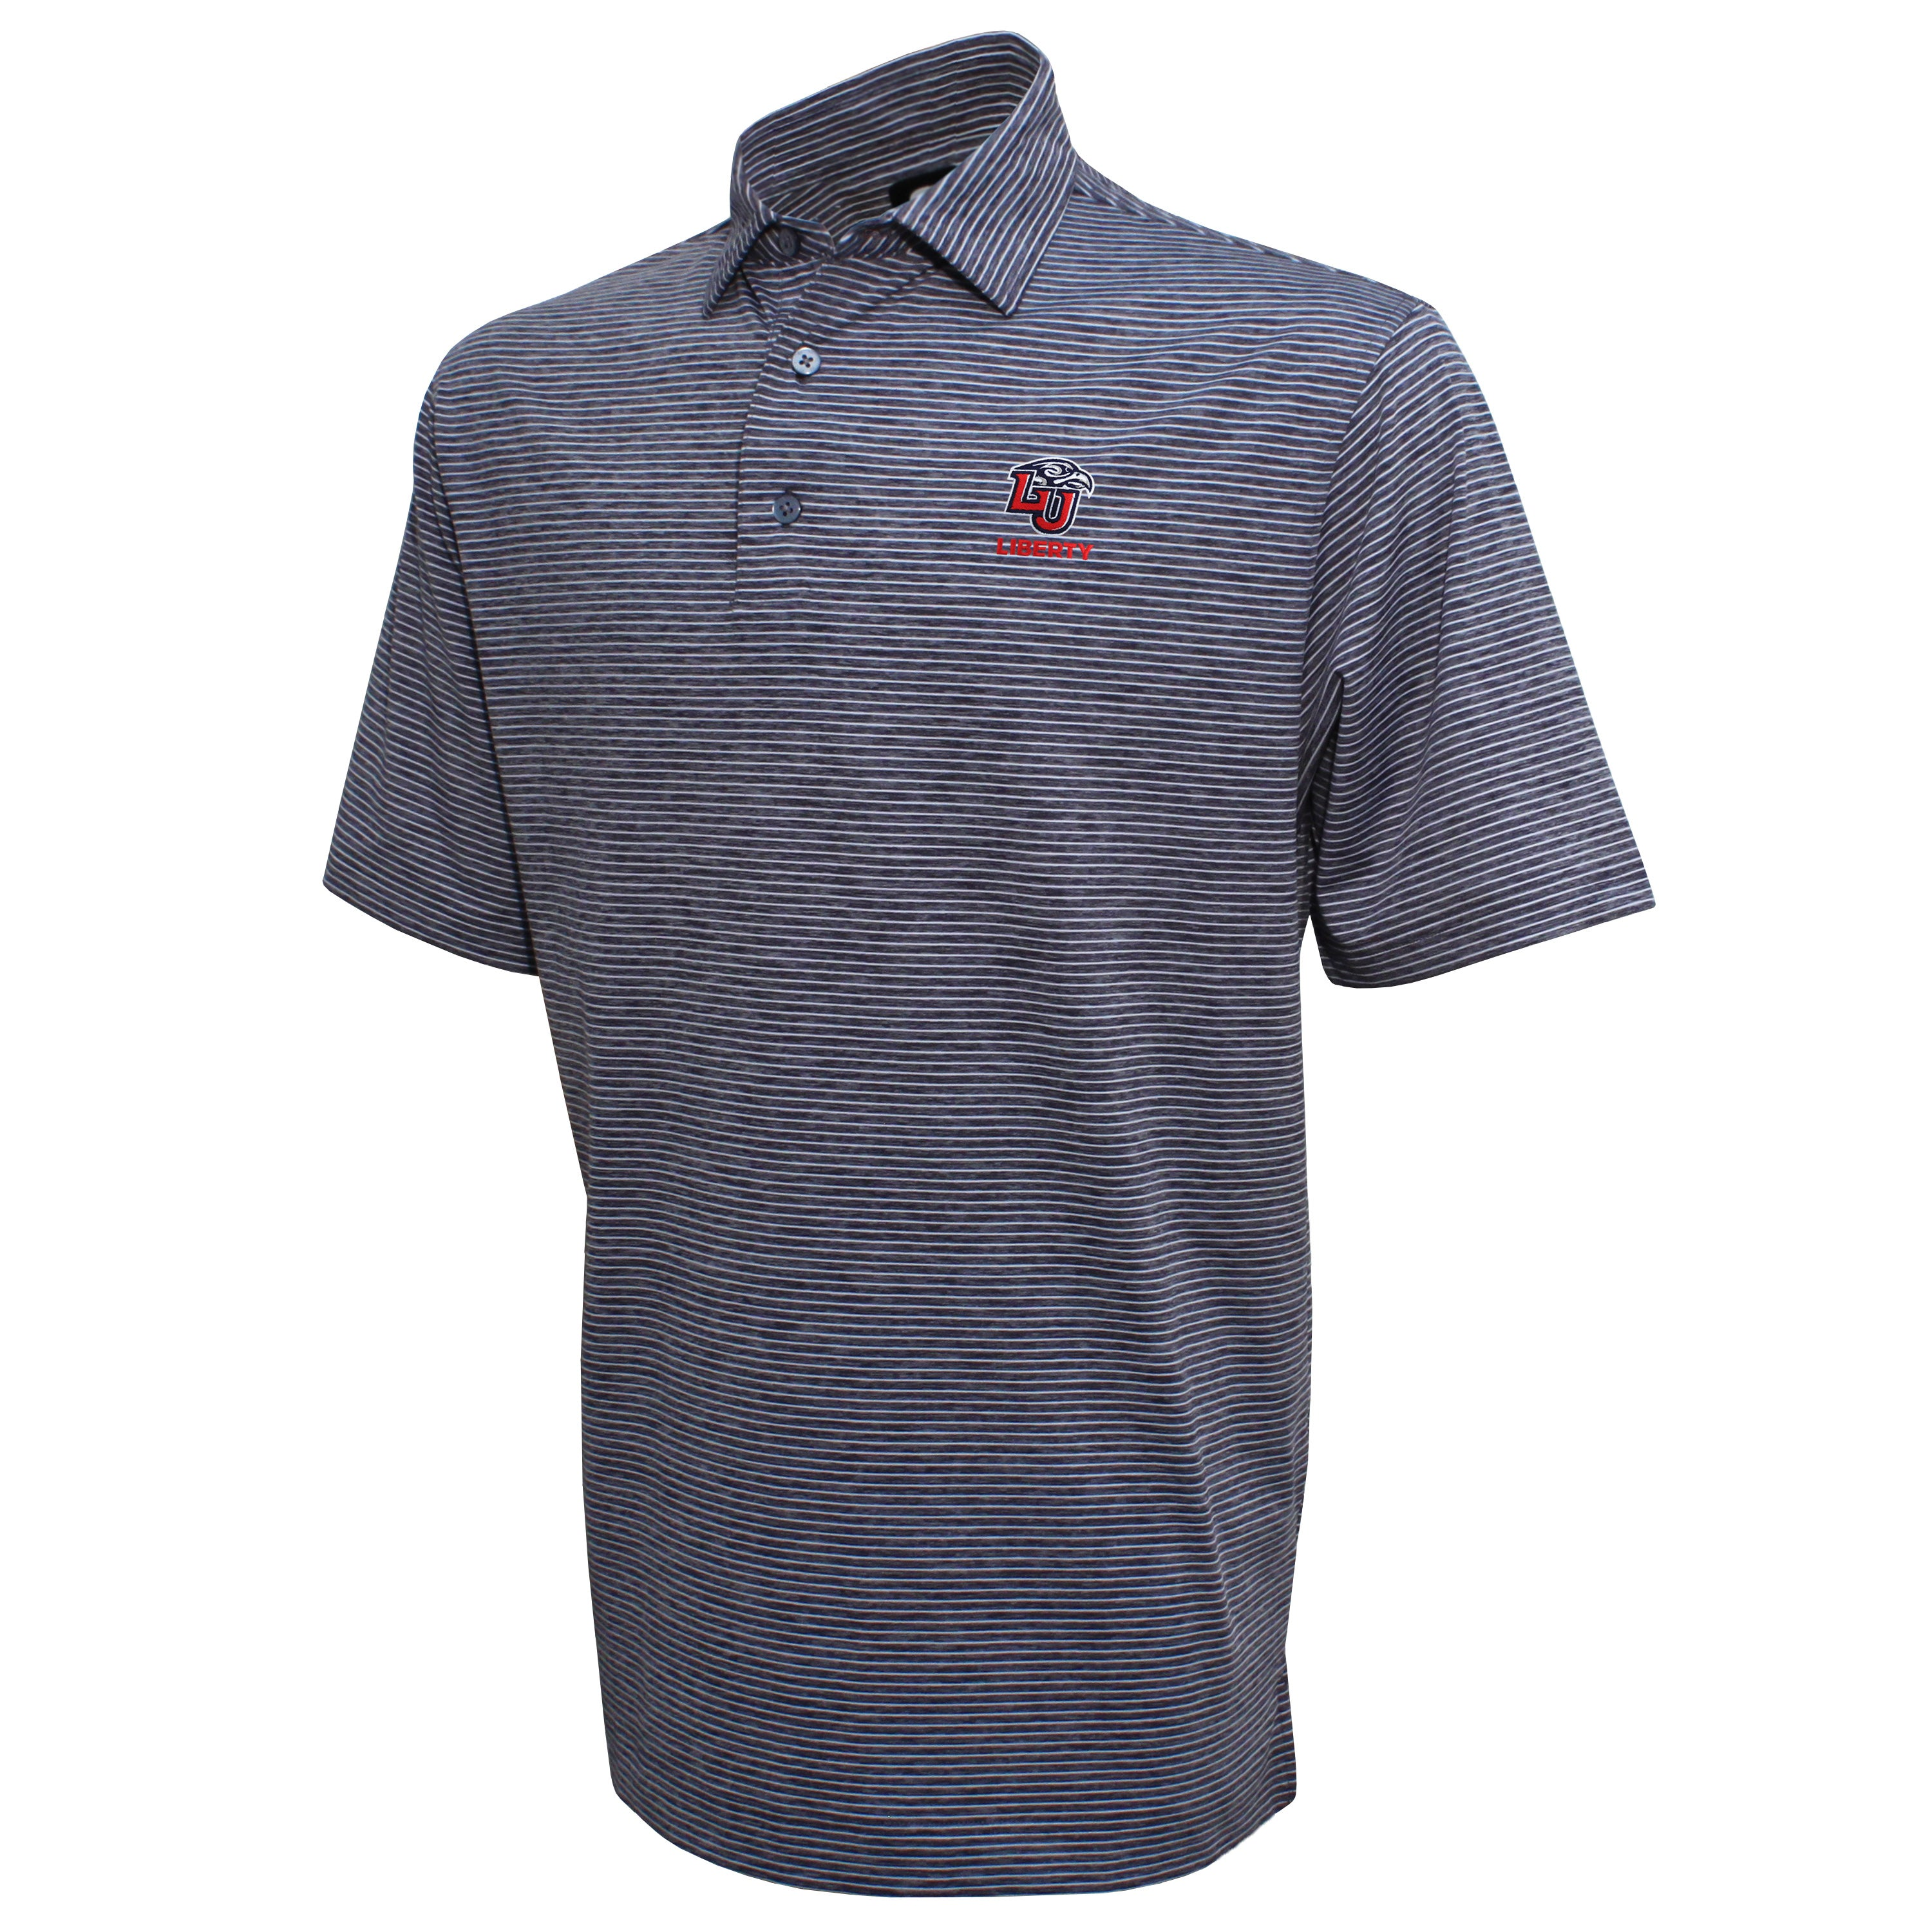 FootJoy Liberty Heather Pinstripe Lisle Polo Shirt